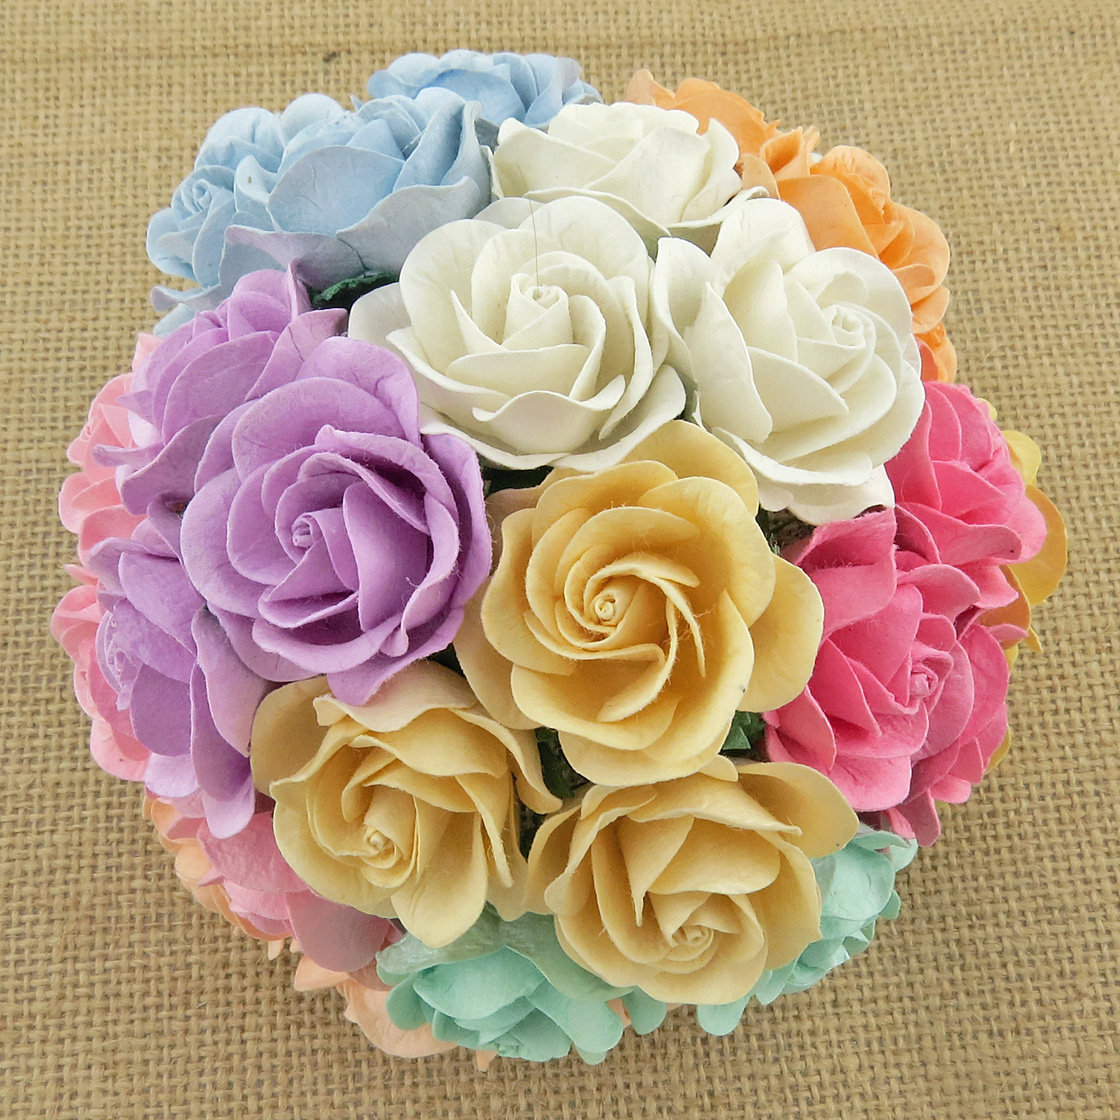 50 MIXED PASTEL MULBERRY PAPER TRELLIS ROSES - 10 COLOR